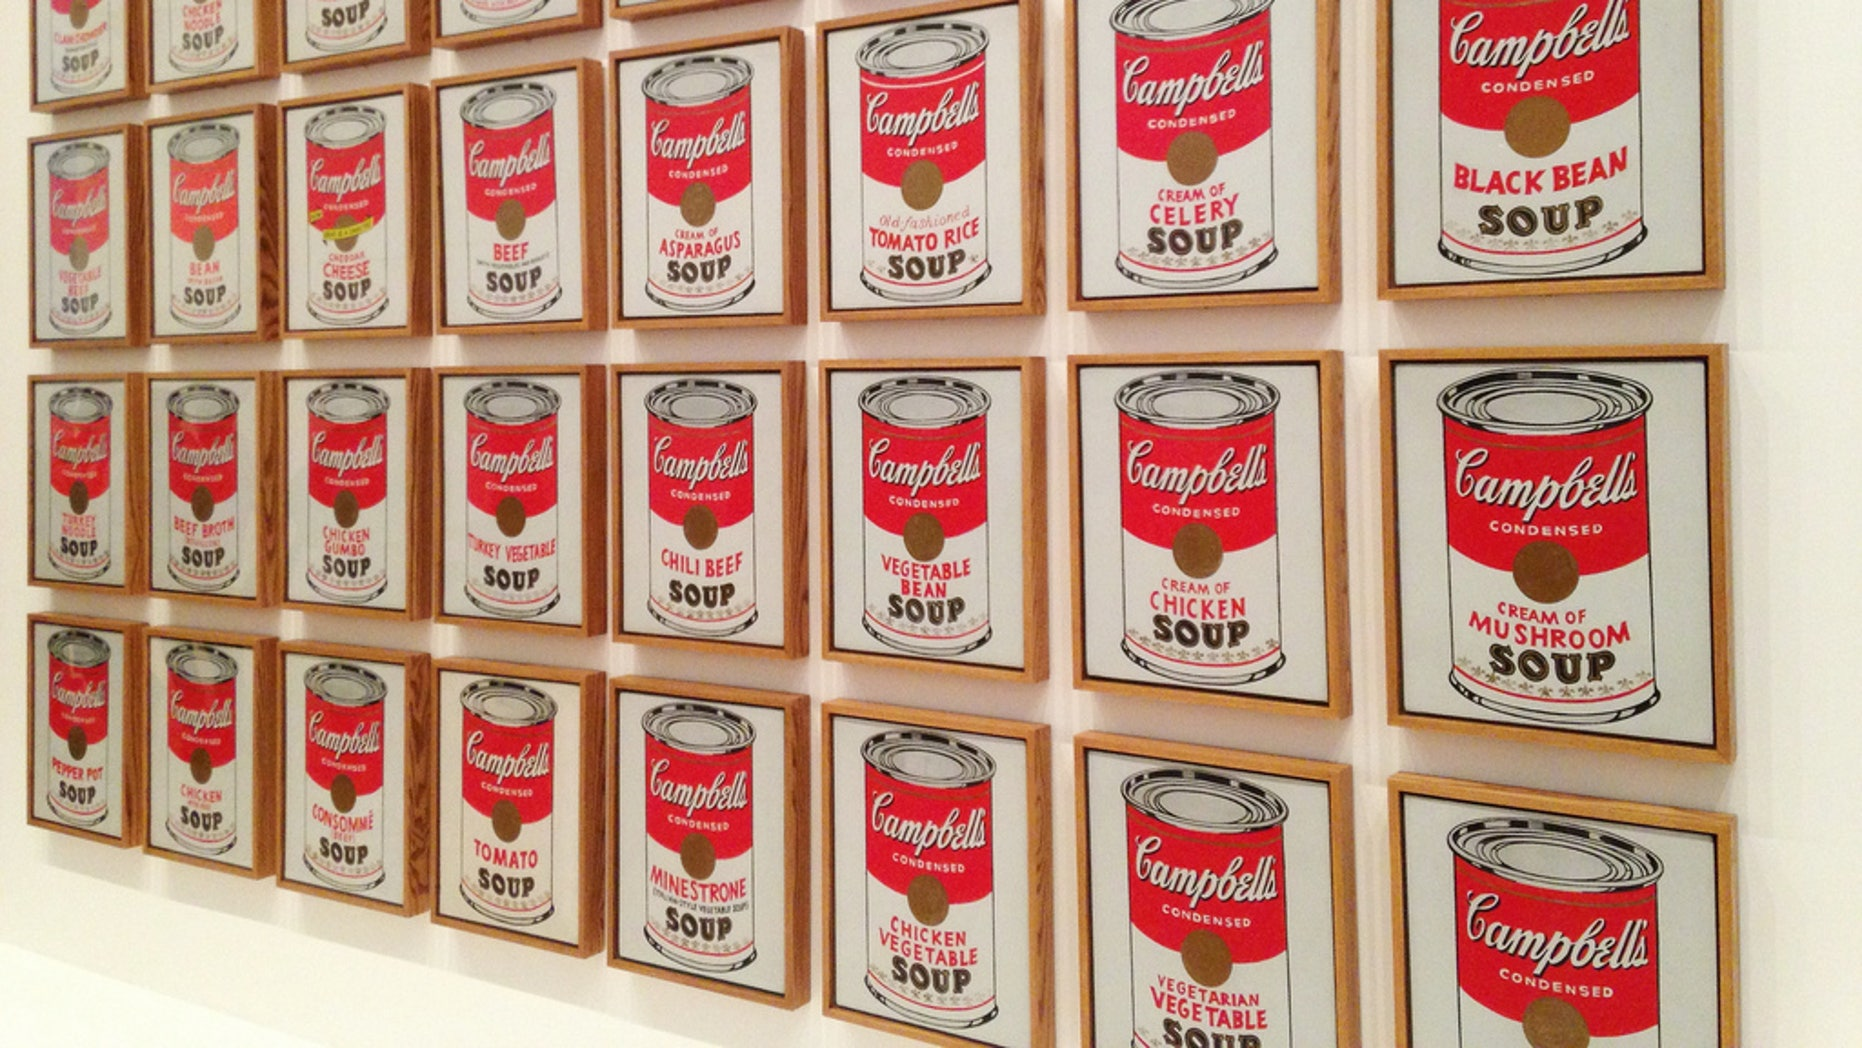 Several pieces of artwork were stolen from a Missouri museum, including Andy Warhol prints of soup cans.